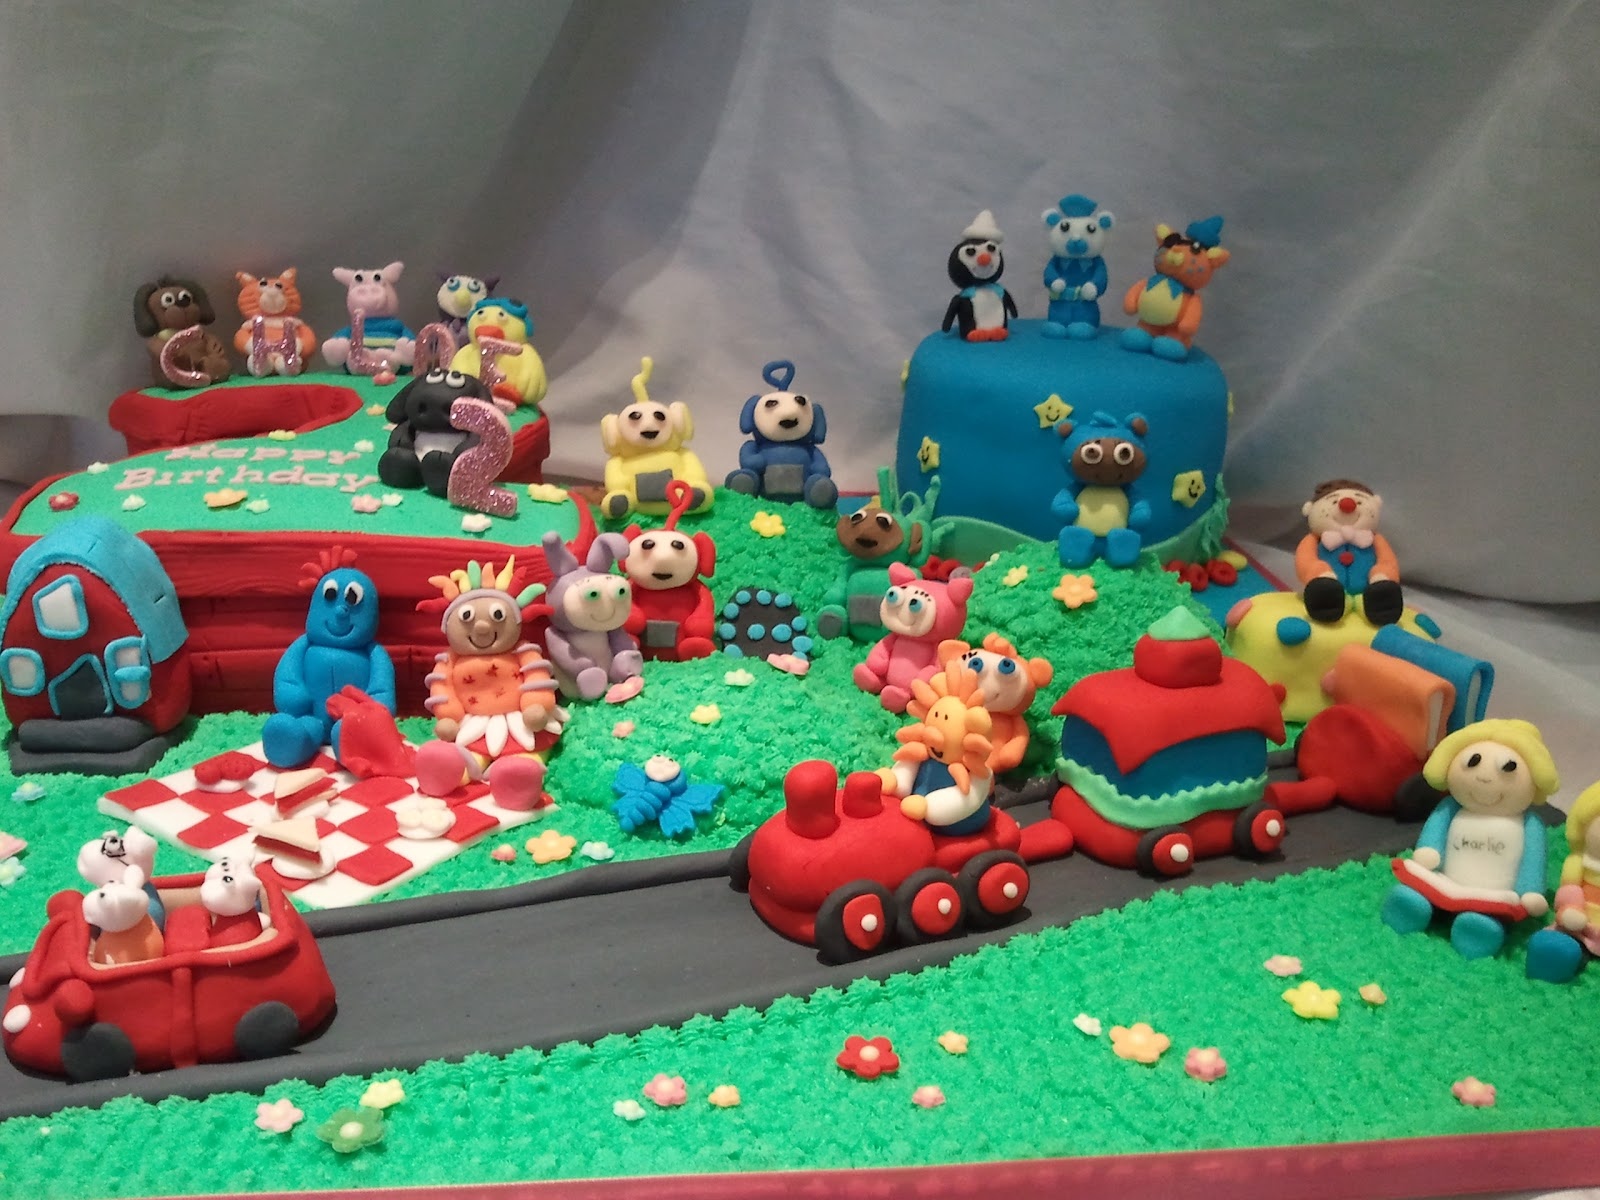 Cbeebies Cbeebies Starry Cakes